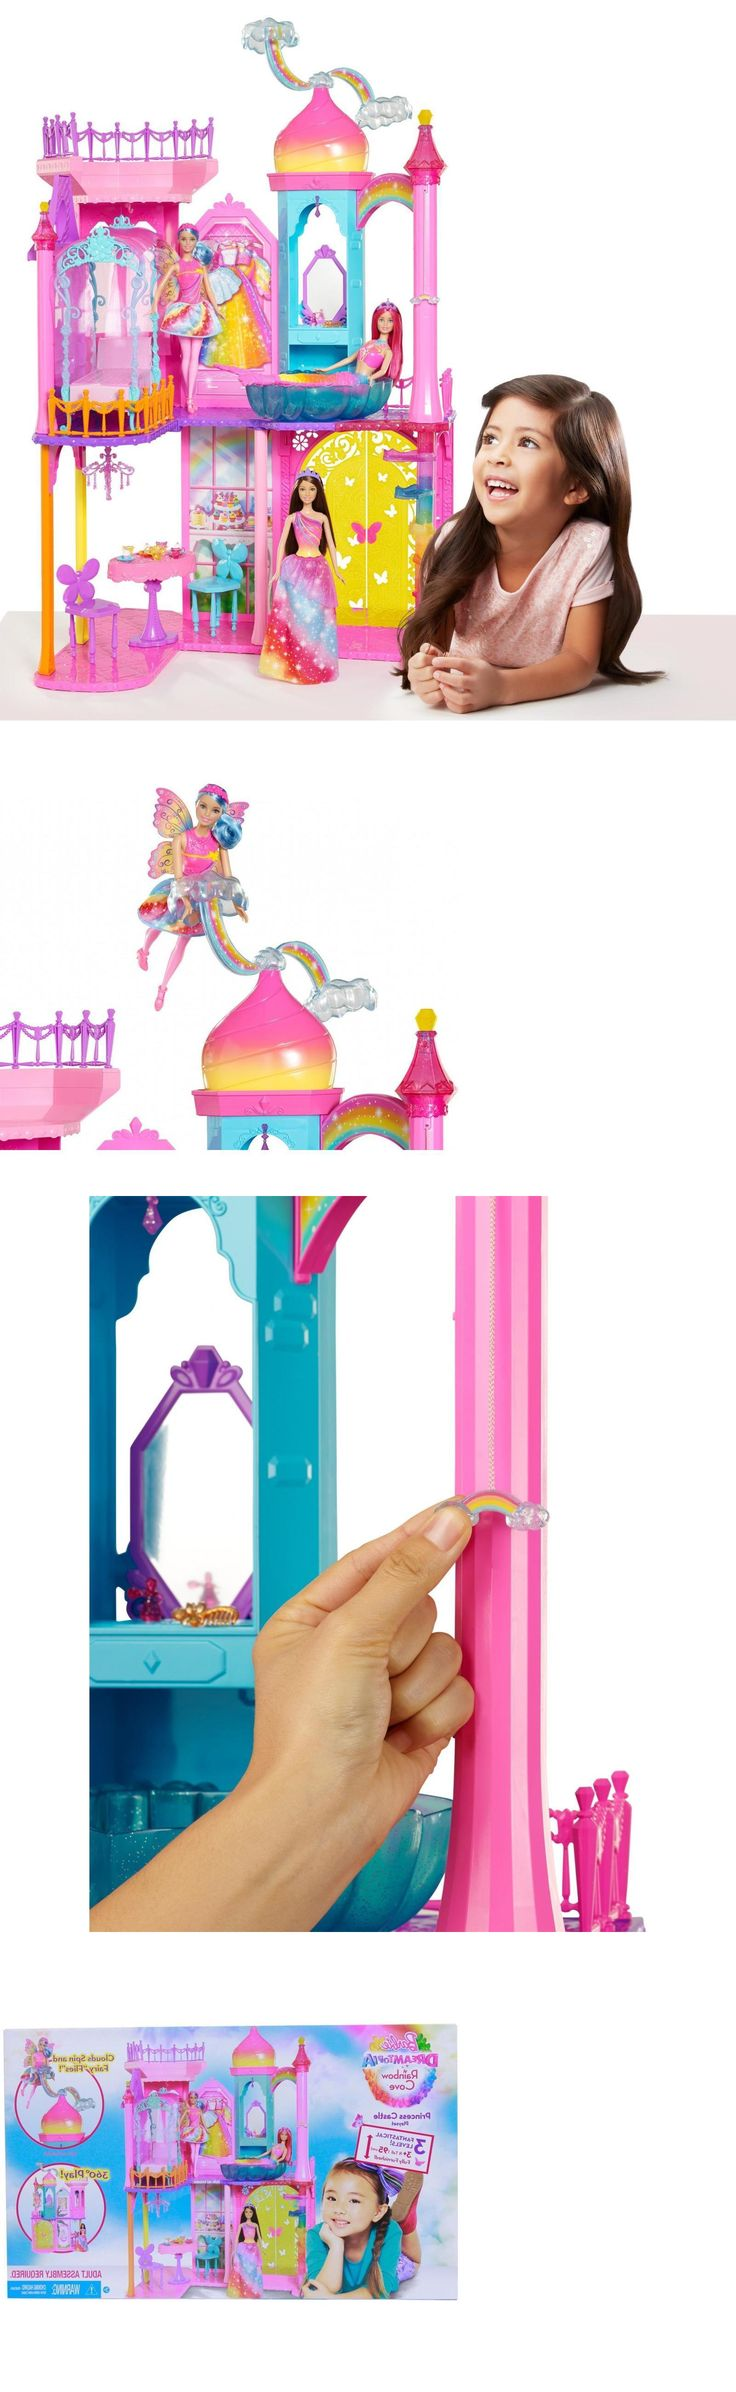 Other Classic Toys 19027: Young Girls Toys Playhouse Dolls Children Game Barbie Princess Castle Playset -> BUY IT NOW ONLY: $71.17 on eBay!